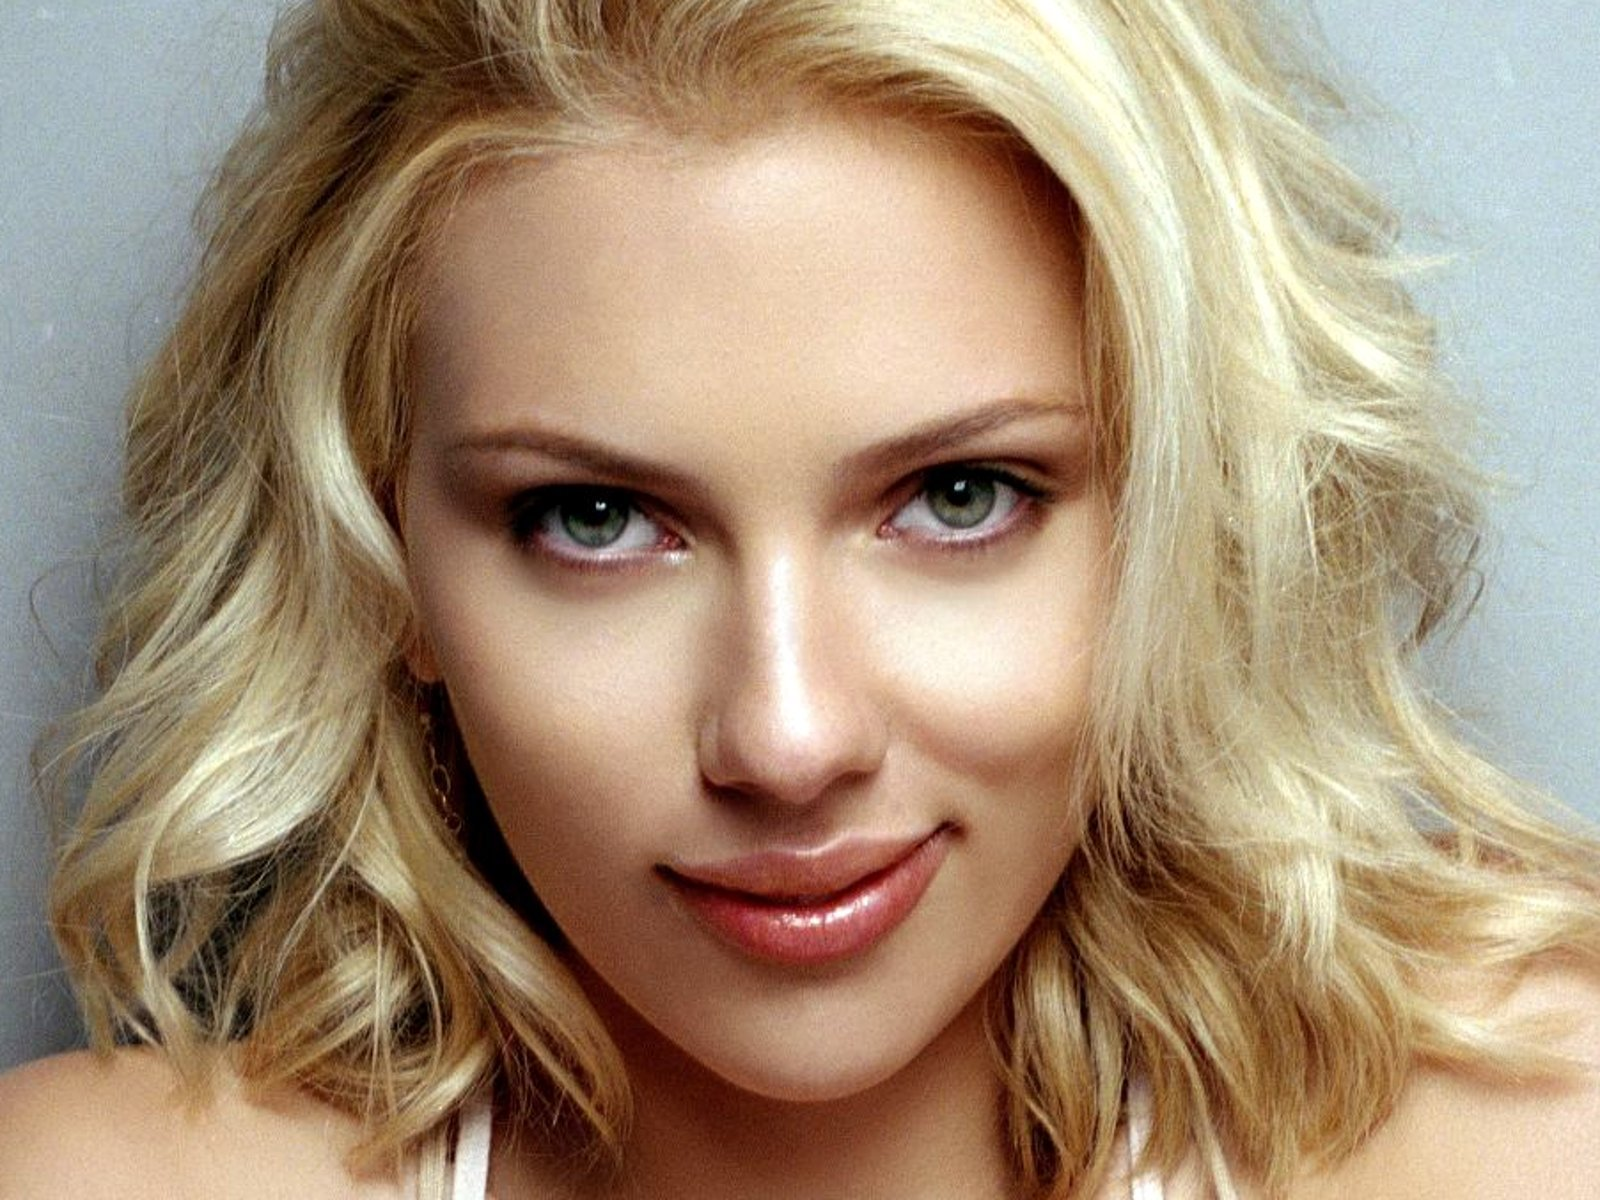 http://3.bp.blogspot.com/-IRqe6QnUhfo/Tg3OOFngAYI/AAAAAAAAAGE/oxjfloFUJ0Y/s1600/The-best-top-hd-desktop-scarlett-johansson-wallpaper-scarlett-johansson-wallpapers-11.jpg